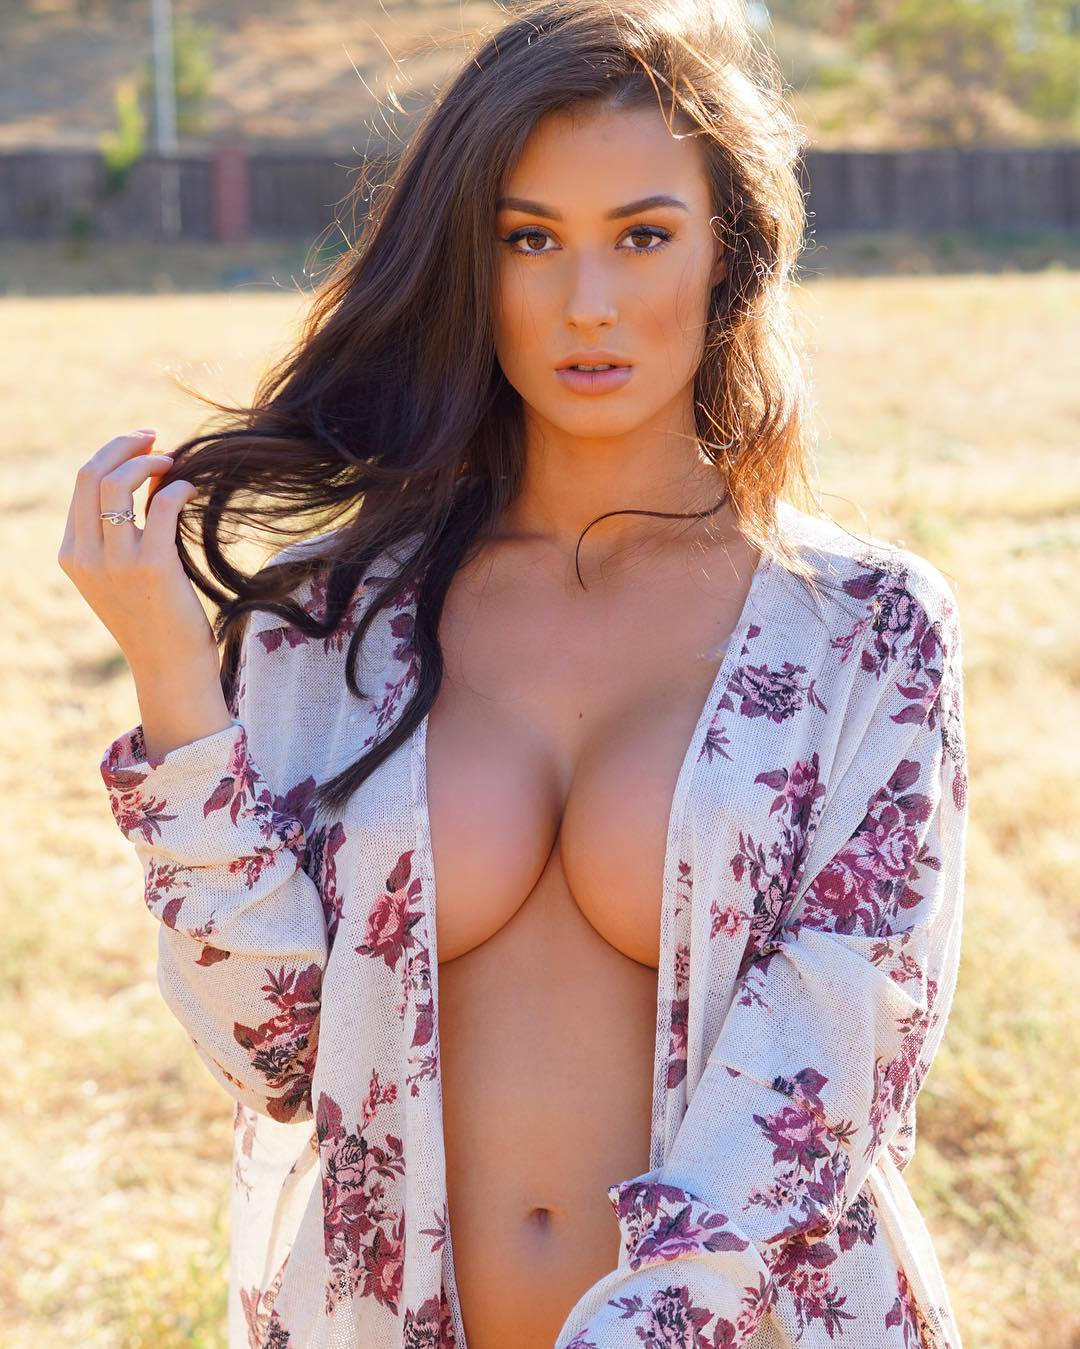 Model Bianca Kmiec Sexy Photoshoot-7469